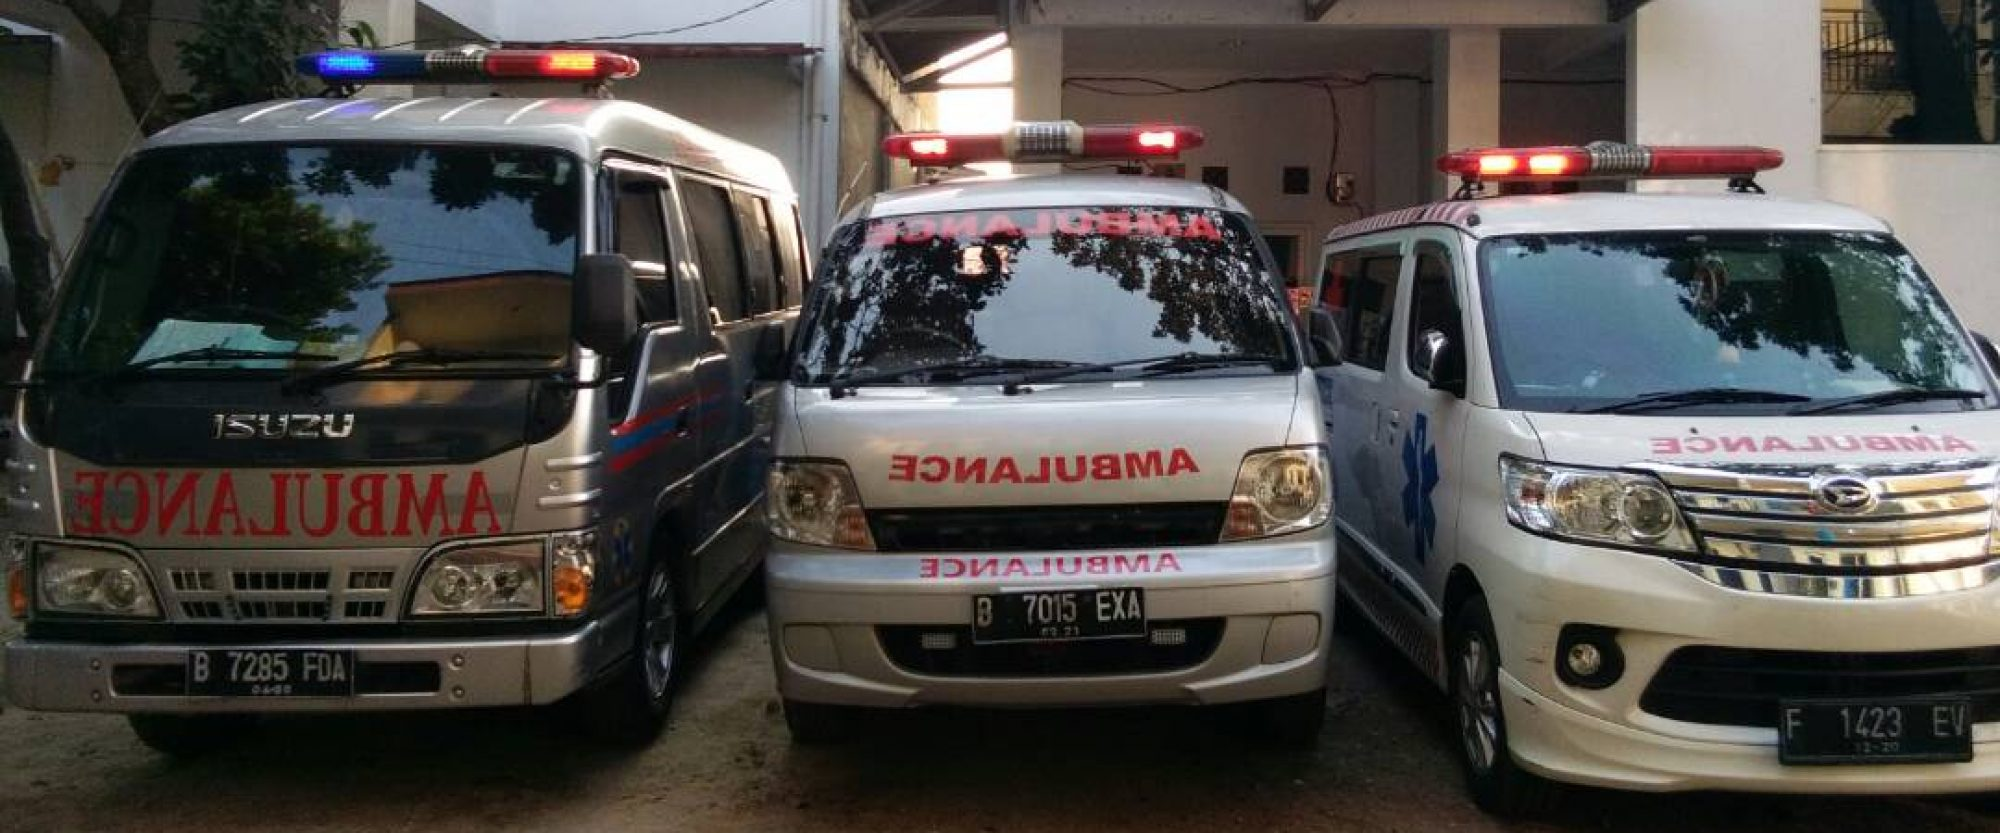 Sewa Ambulance Indonesia 085211551088